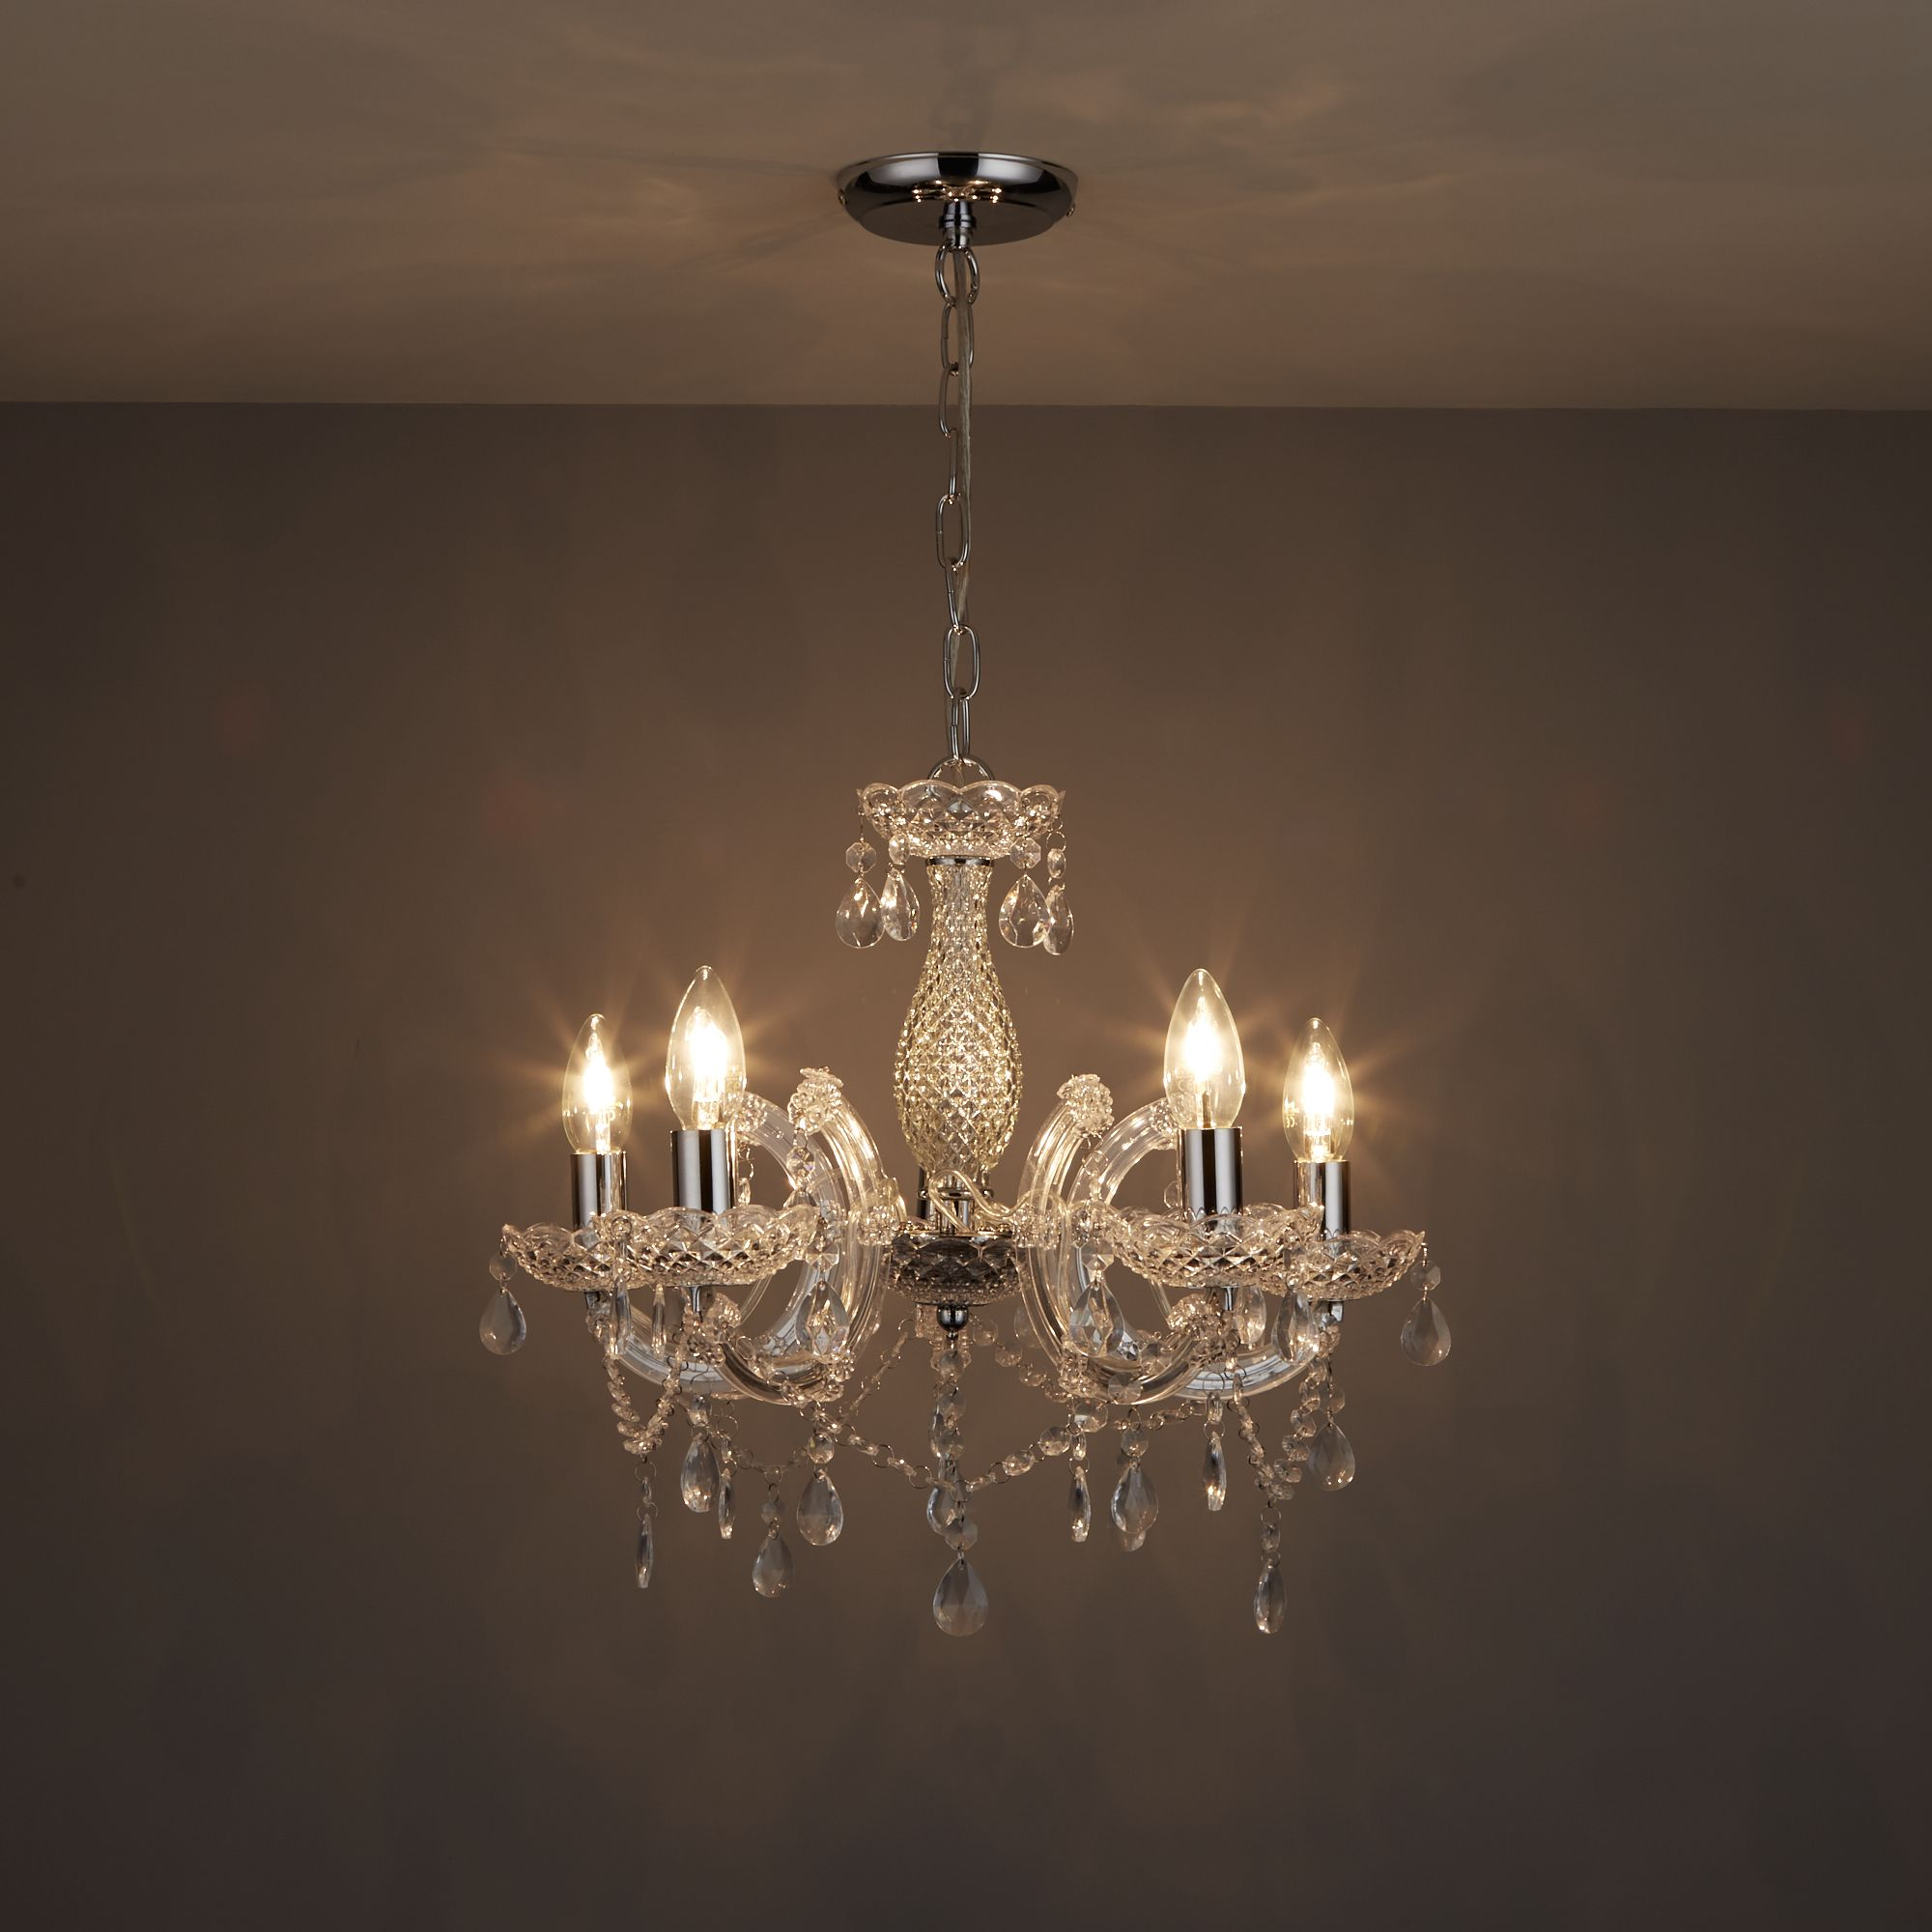 Annelise Crystal droplets Silver 5 Lamp Pendant ceiling